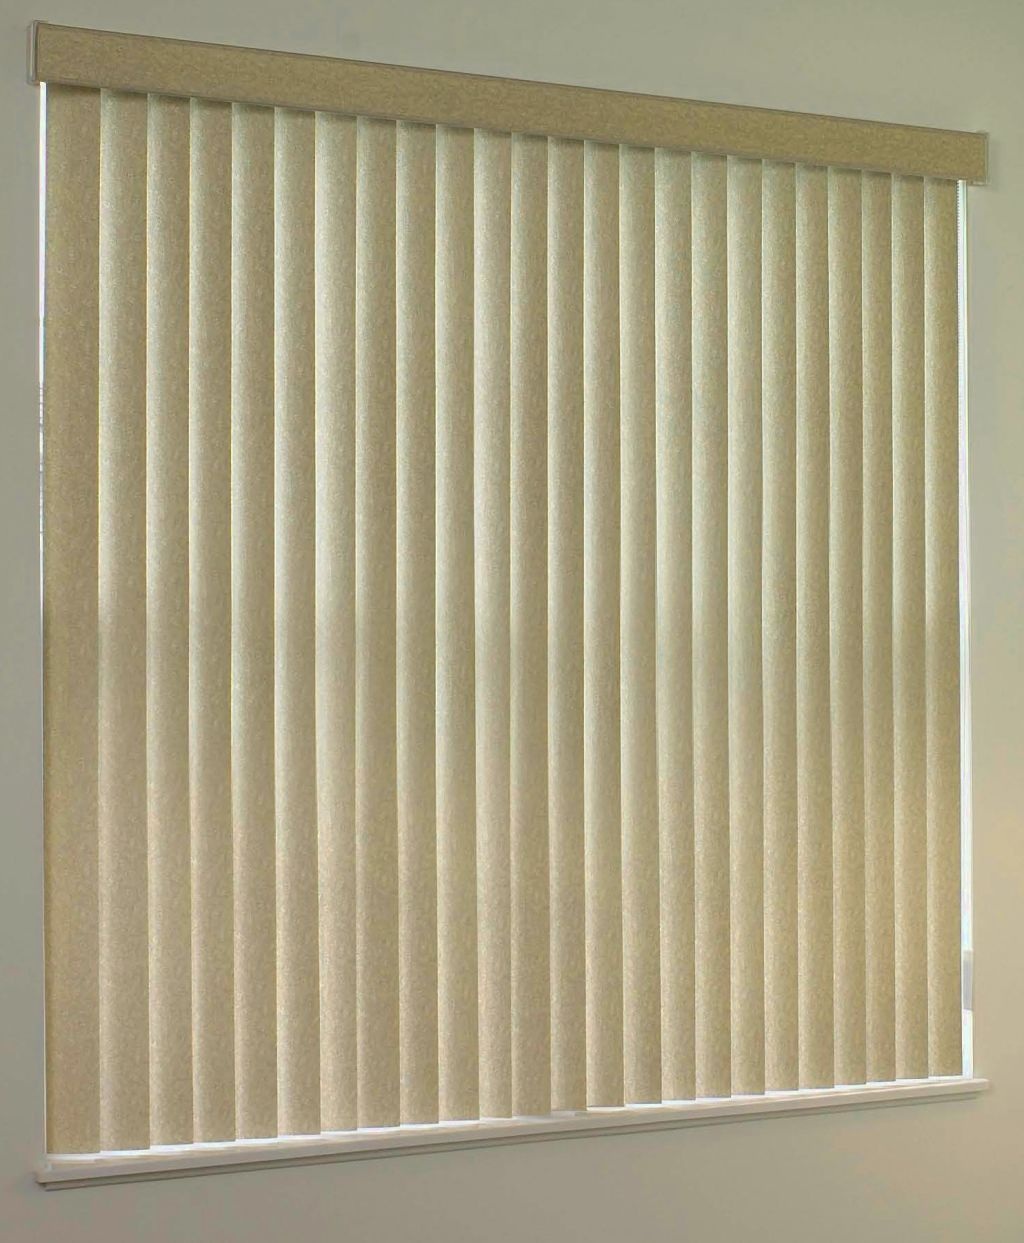 Vertical Blinds Ideas From Lowes